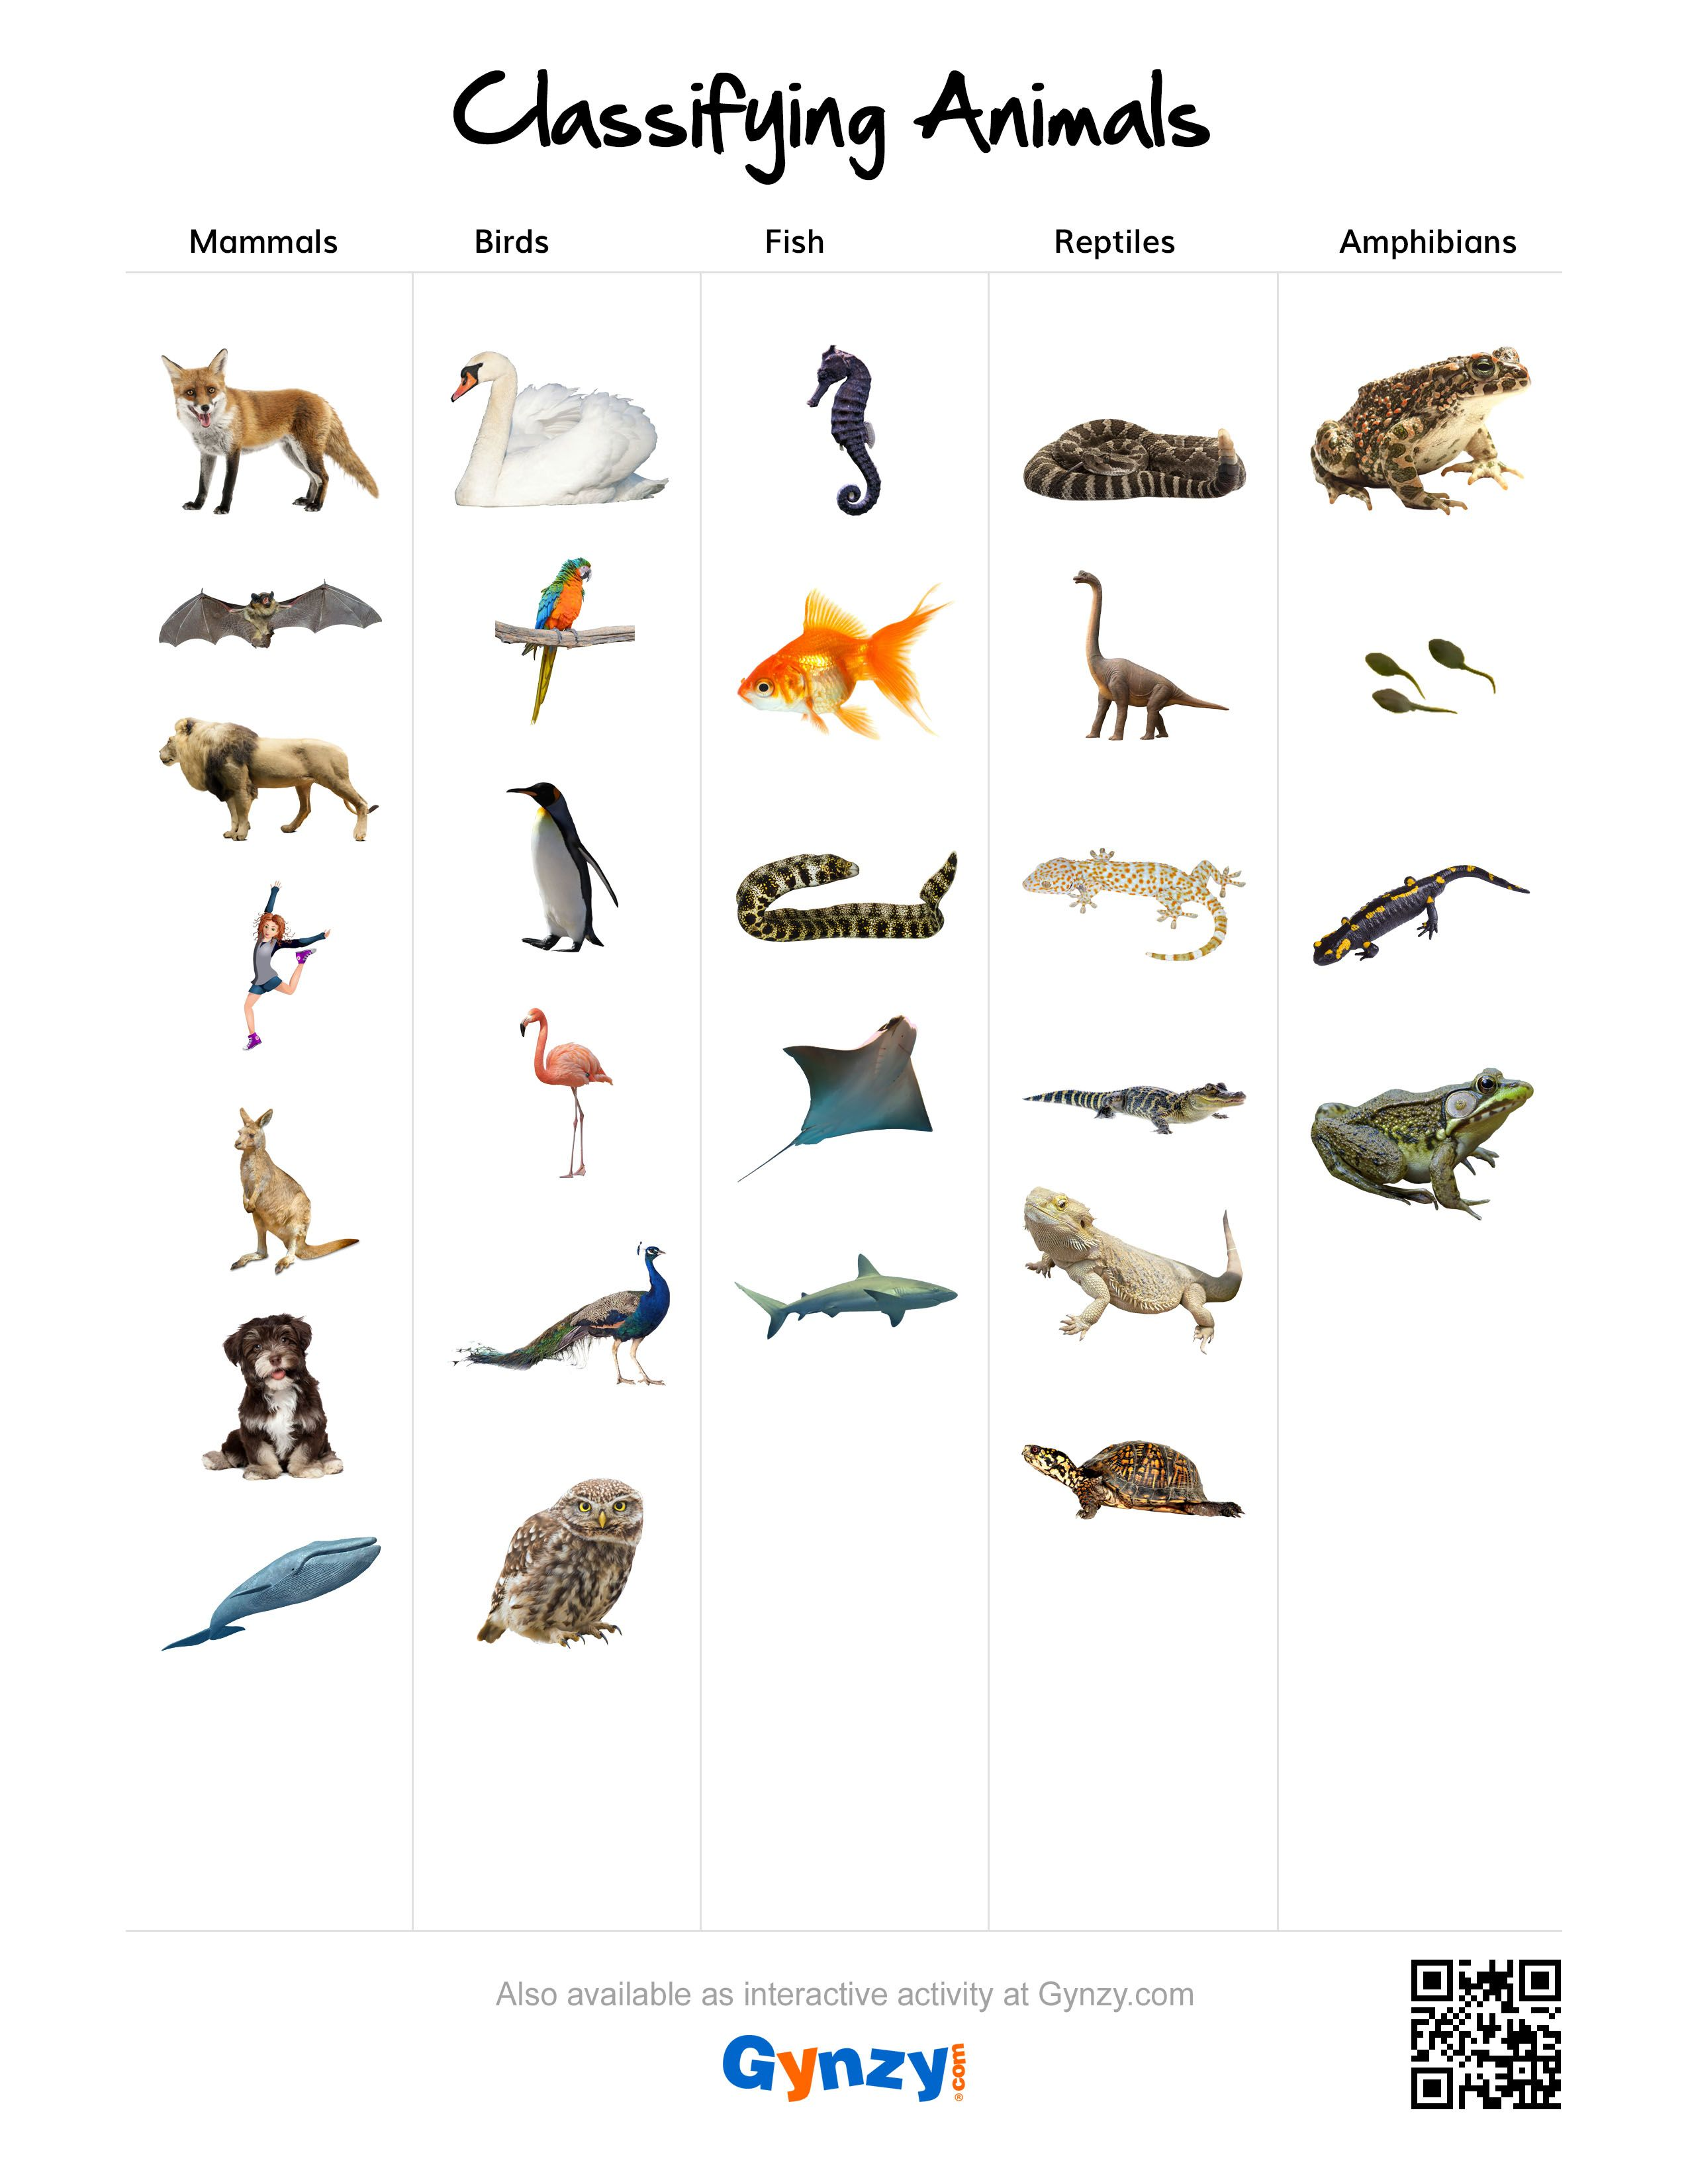 Mammals, Birds, Fish, Reptiles or Amphibians. [https://r ...